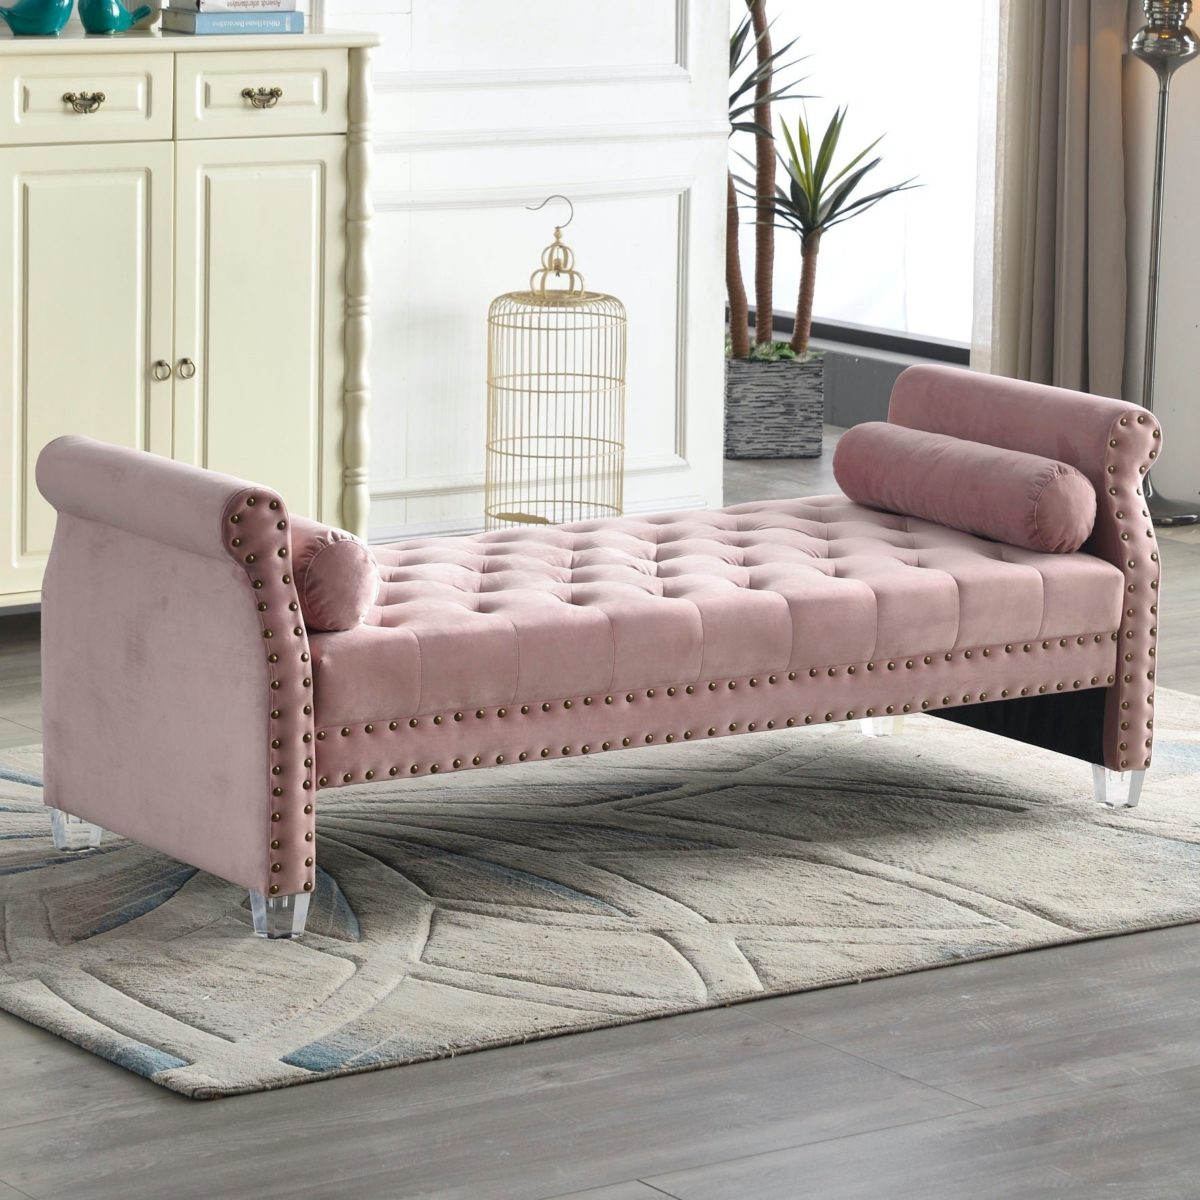 bench, Get your home furniture including, Sofa, Bed, Sectional Sofa, Wardrobe, night stand, couches, dressing table Ottoman, Living Room Furniture.Sectional sofa, dubai furniture,furniture store near me, online furniture store, home furniture, best furniture in dubai, accent chair, armless chair, online furniture store in dubai, office furniture